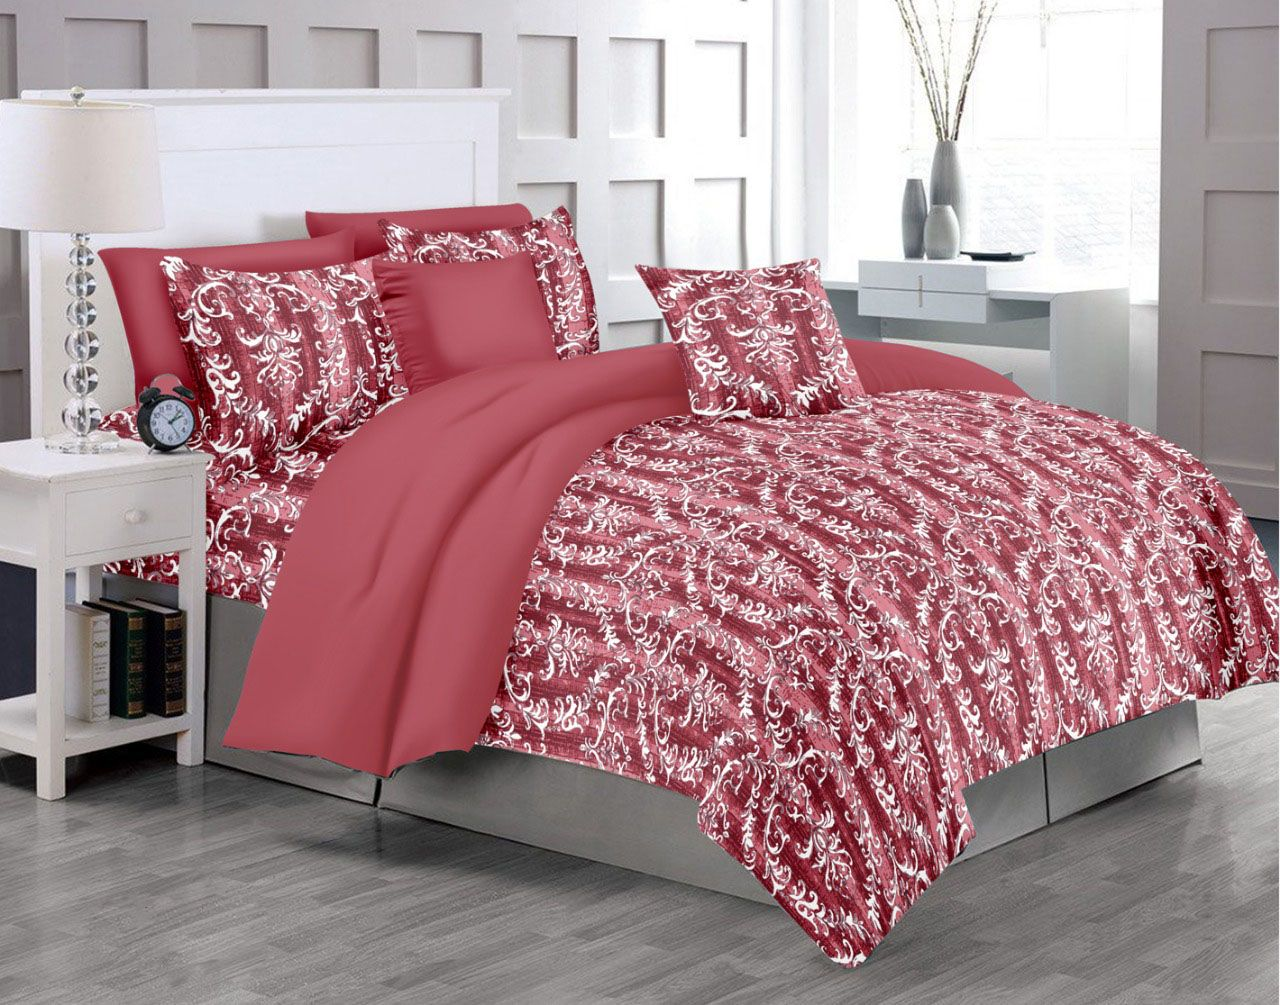 Bed sheets wholesalers in kolkata and manufacturers in